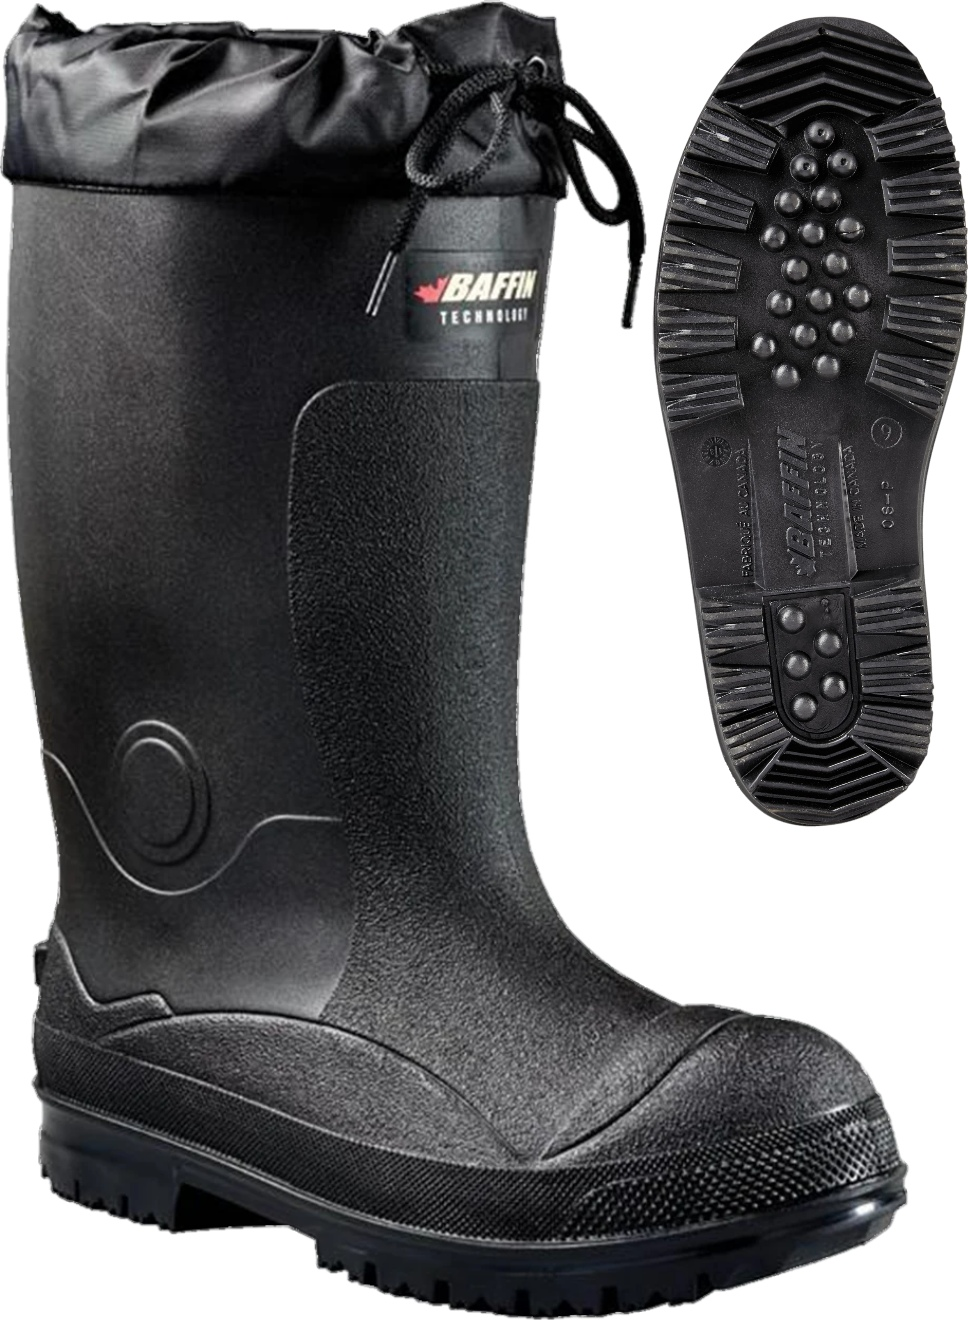 aa019f7b0d8 BAFFIN TITAN MEN'S EXTREME ALL-RUBBER WINTER BOOTS